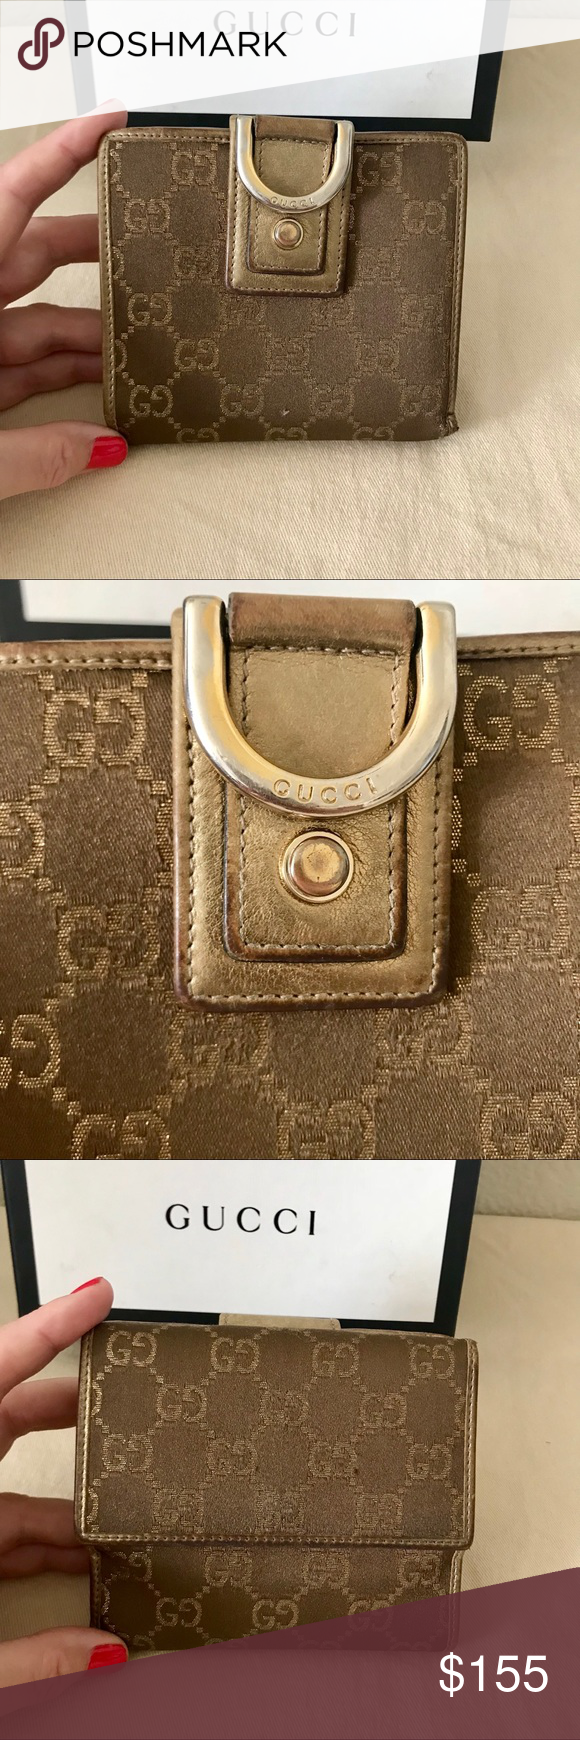 d4f0bee16616 GUCCI Brown/ Gold Canvas GG Abbey Small Wallet Authentic Gucci Brown/ Gold  Monogram Canvas